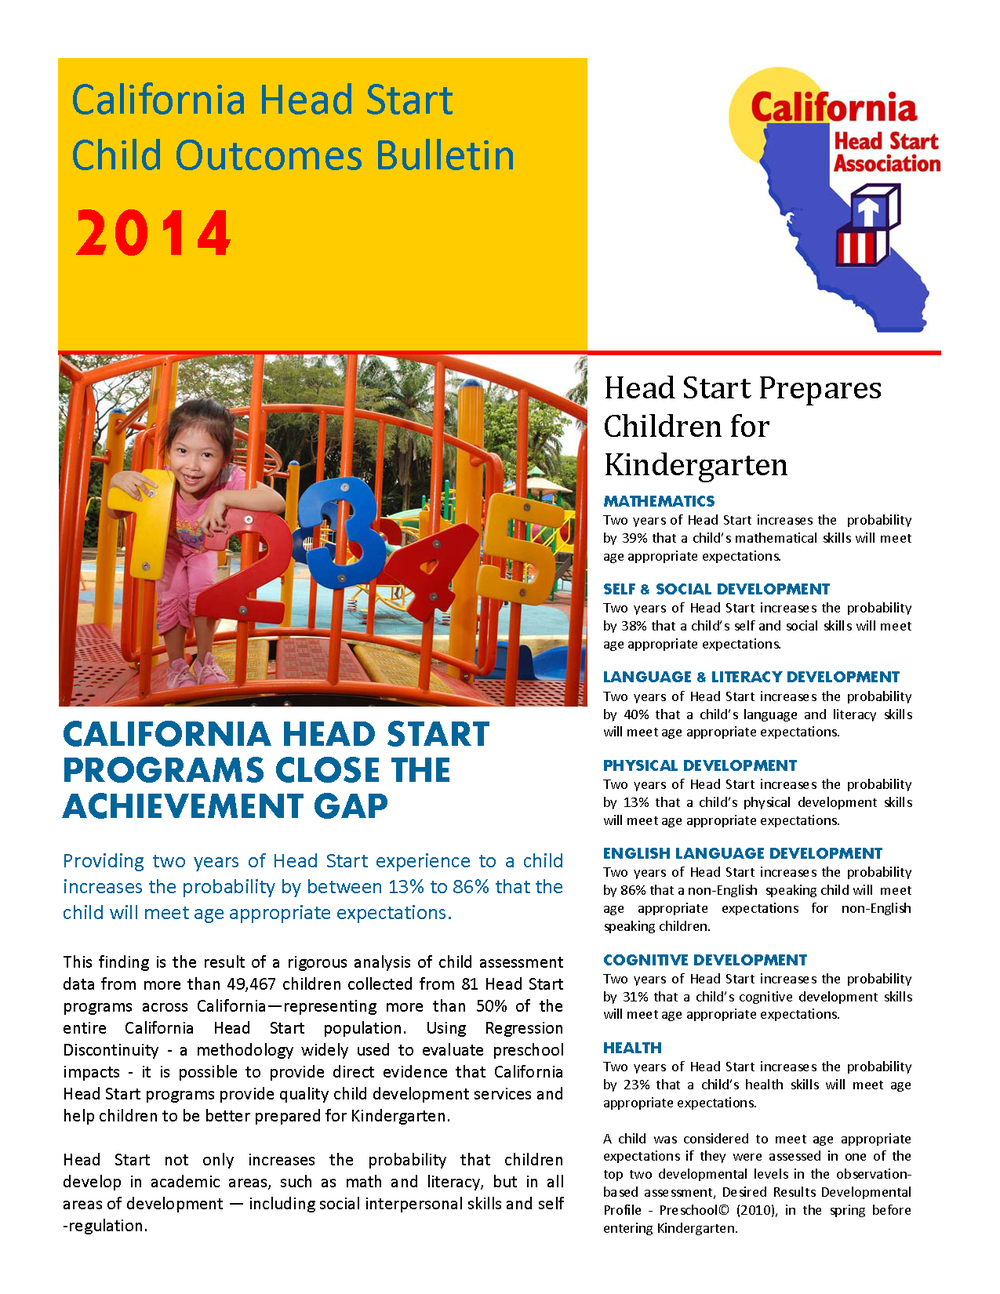 California Head Start Child Outcomes Bulletin 2014